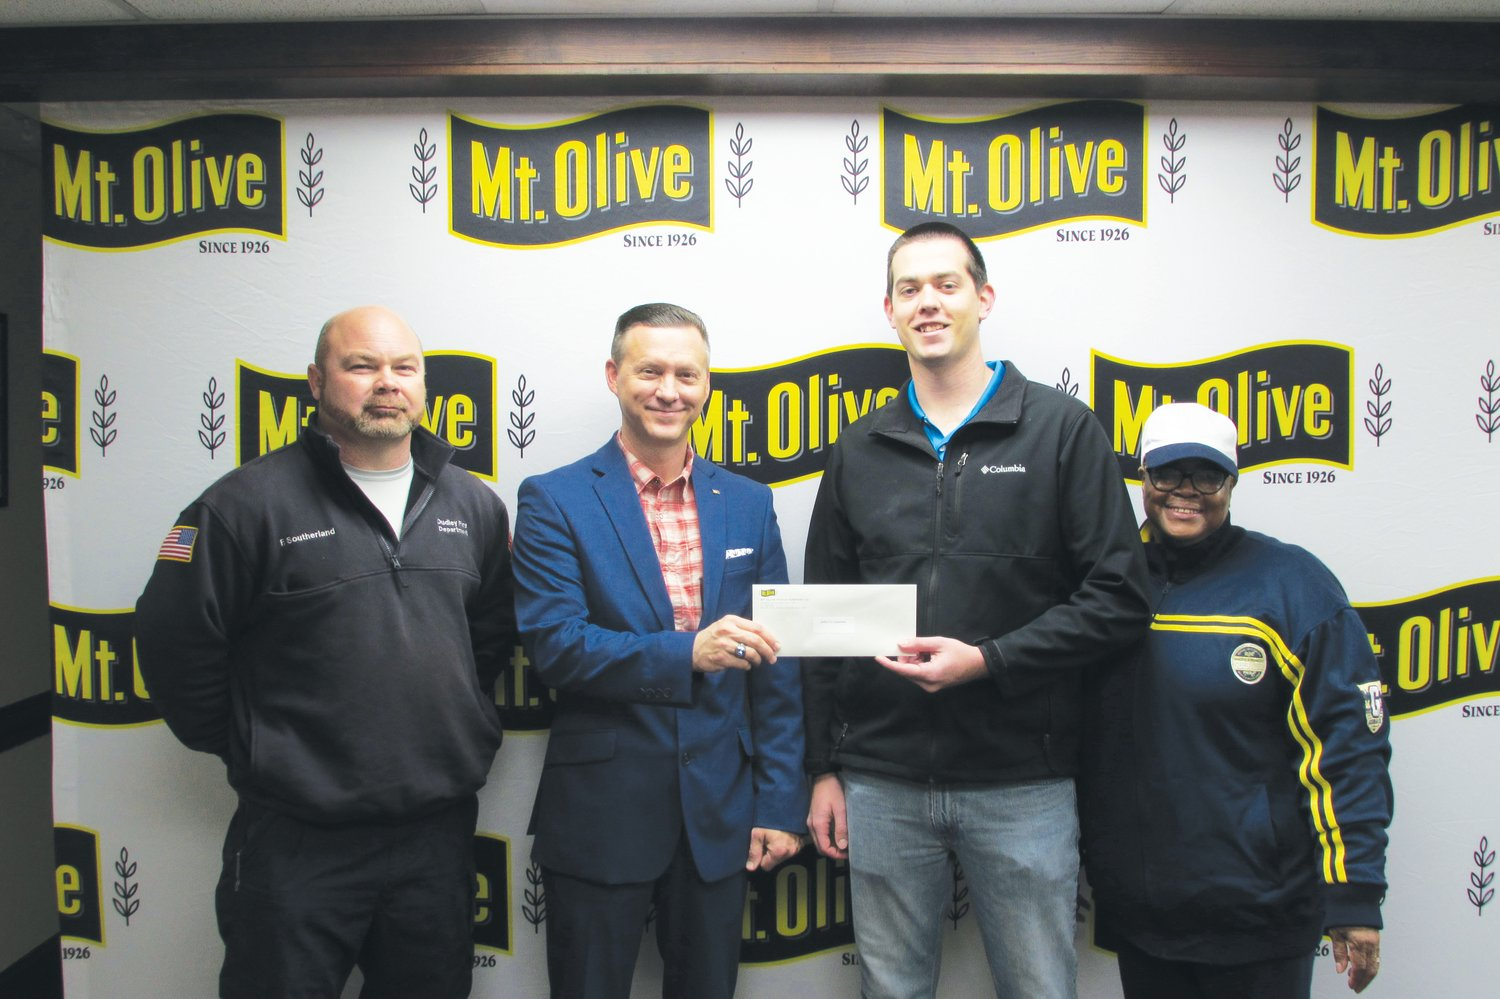 Mt. Olive Pickle Company's Employees Community Fund Chairman Patrick Muston, second from left, presents a check for $1,775 to Freddy Southerland and Brandon Lee, captains of Dudley Volunteer Fire Department. Also pictured is Mt. Olive Pickle Employees Community Fund member Michele Dortch.